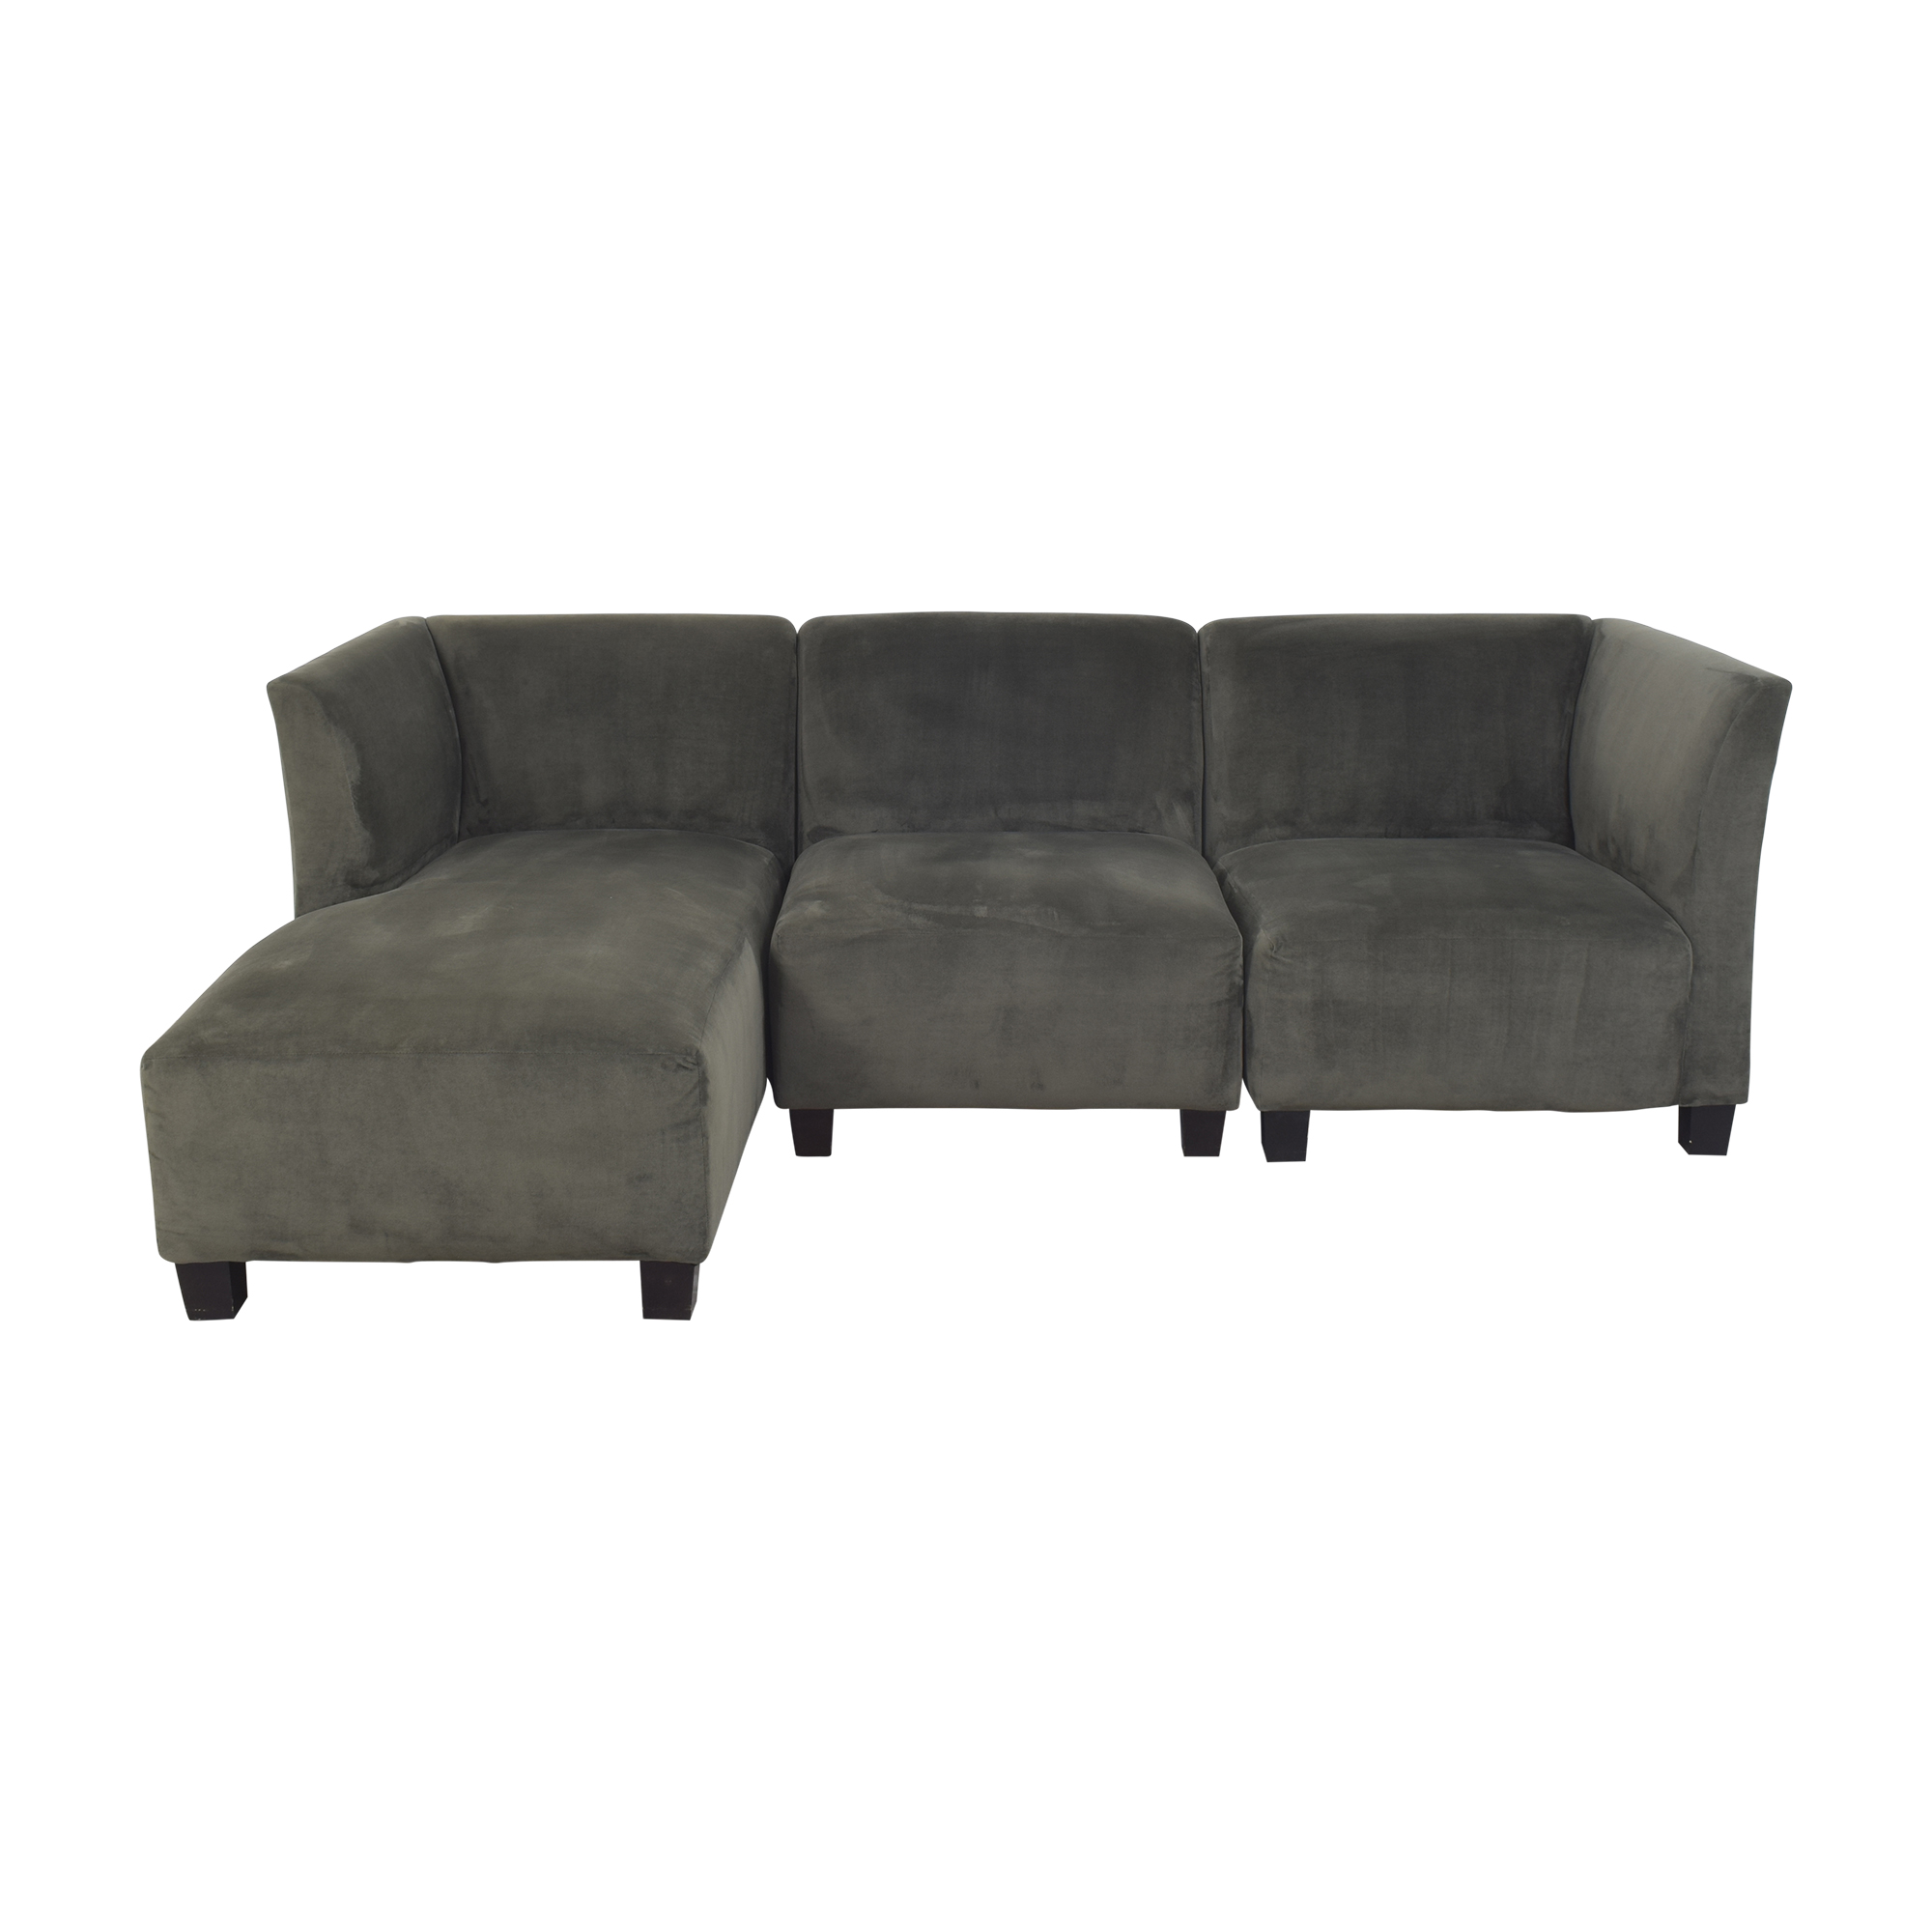 Raymour & Flanigan Raymour & Flanigan Chaise Sectional Sofa second hand